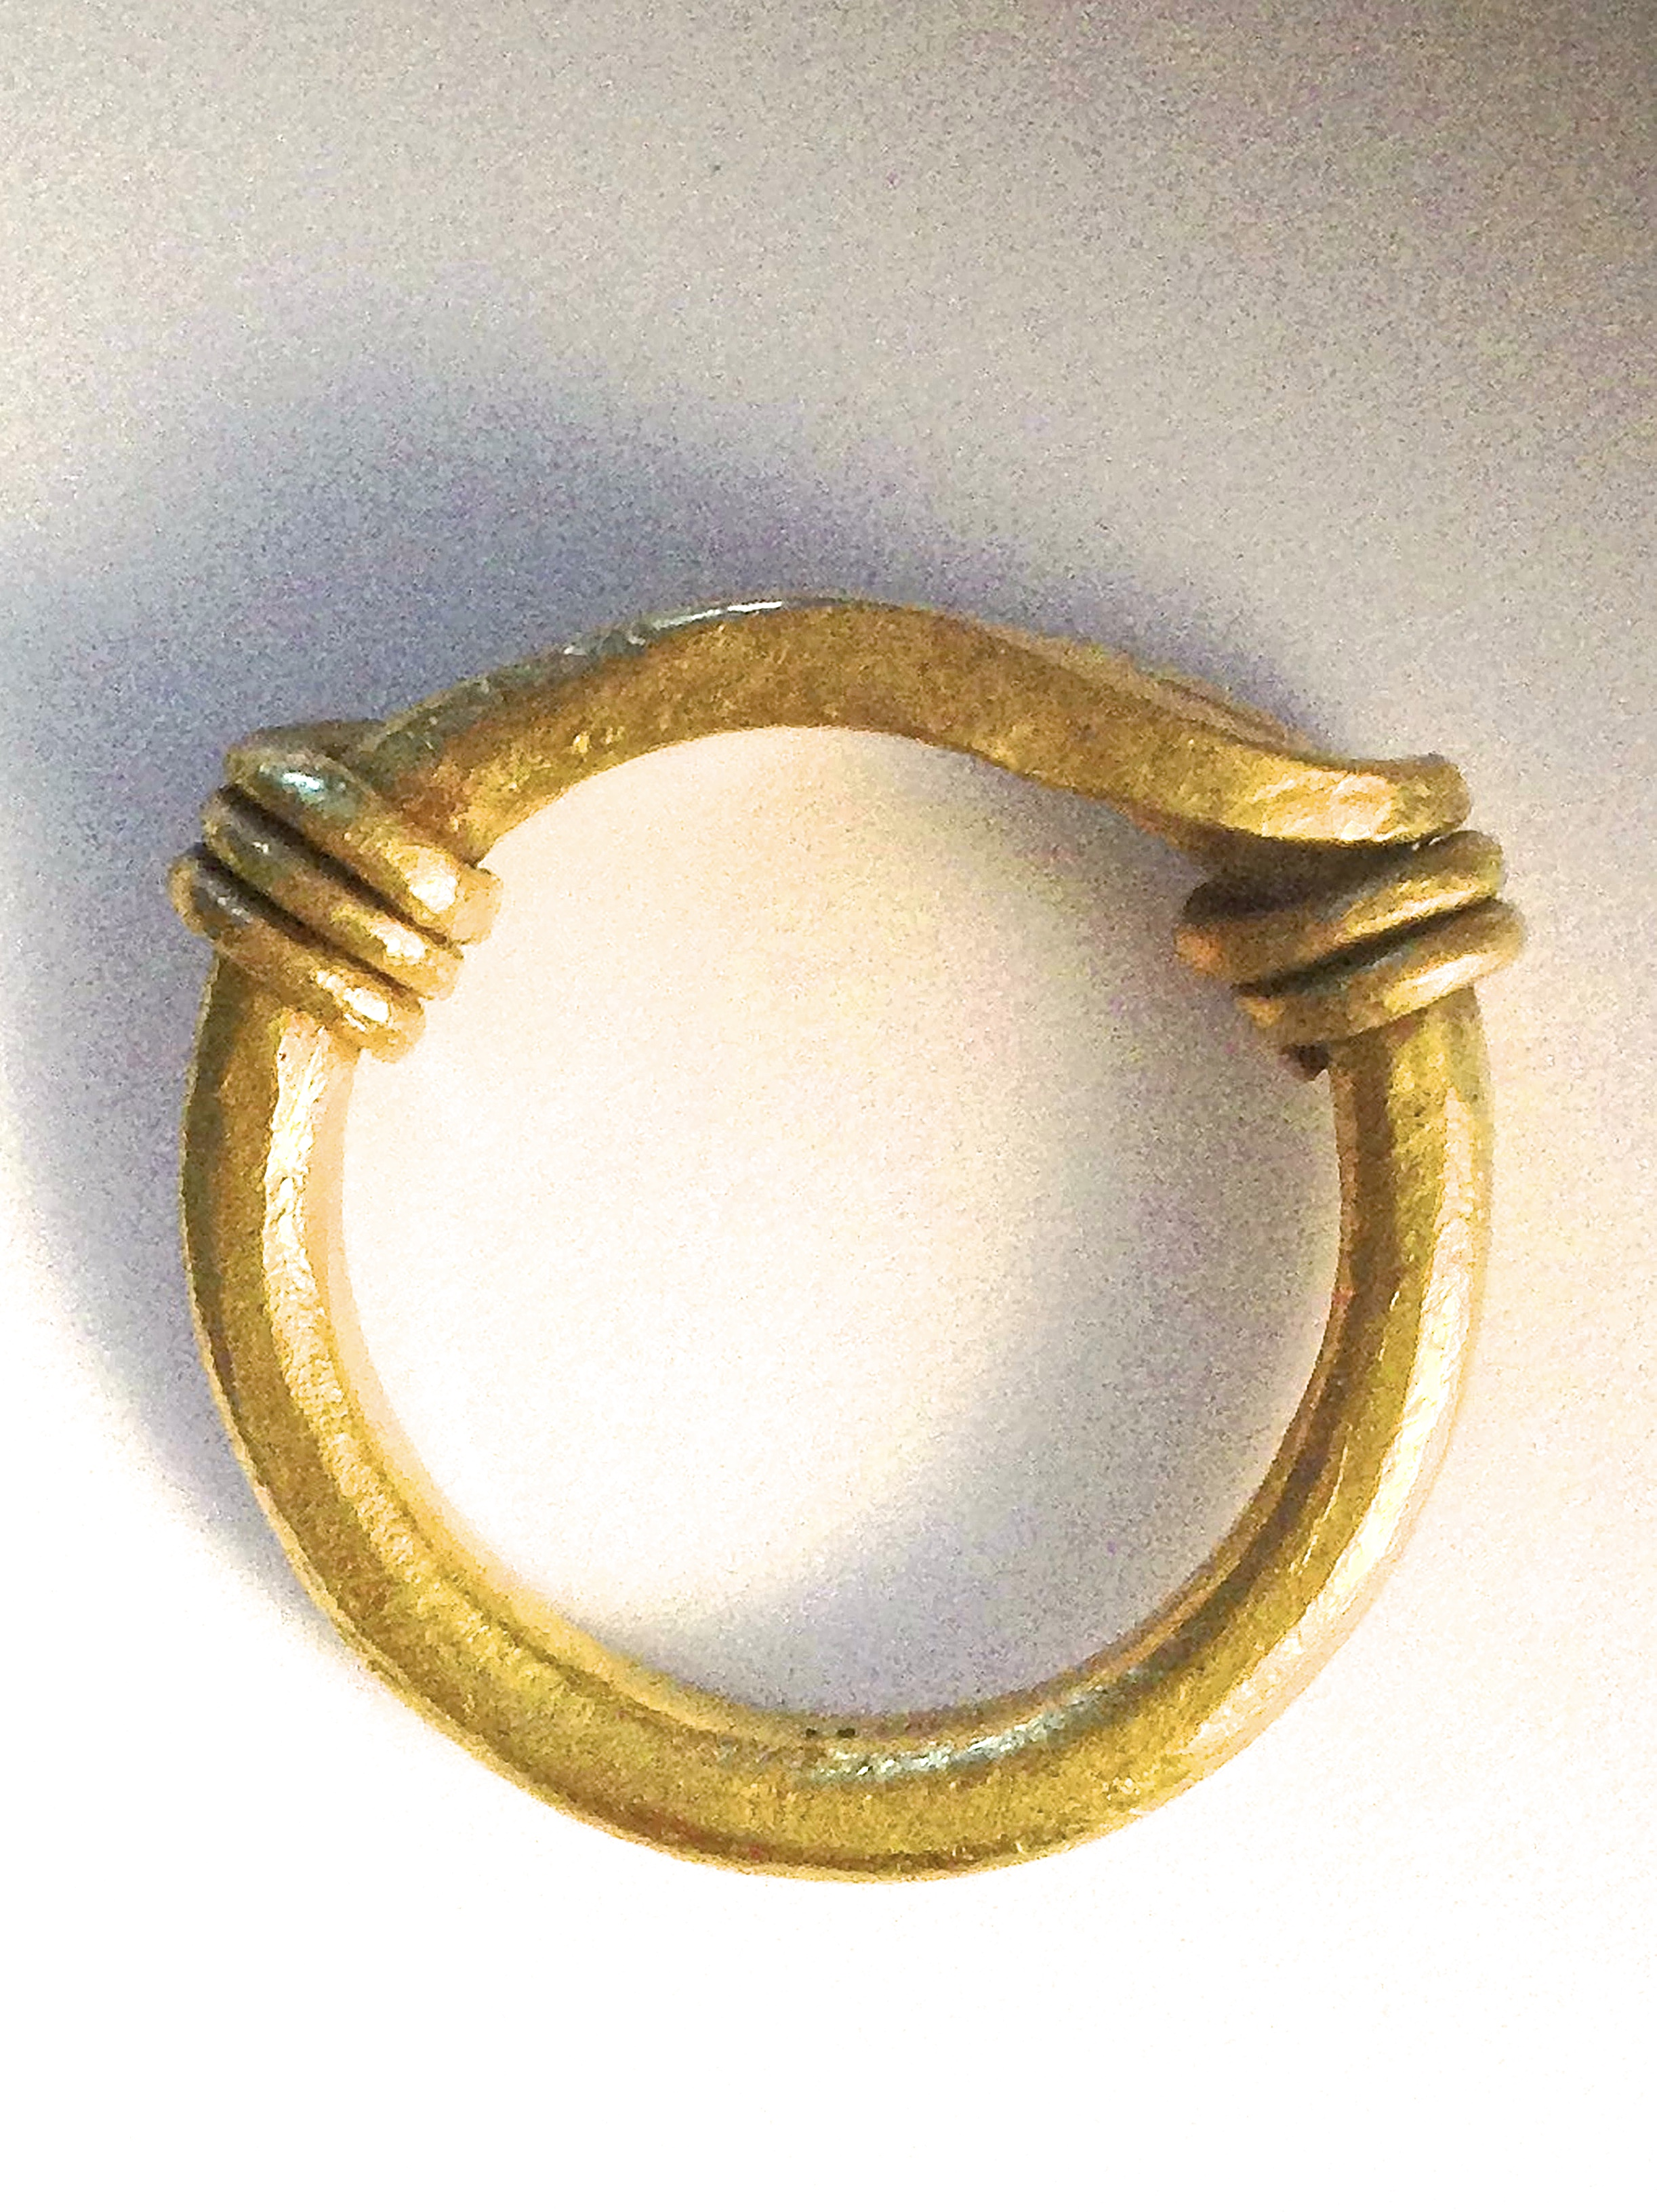 Another ring designed after an ancient form, with took on some magic in the making.